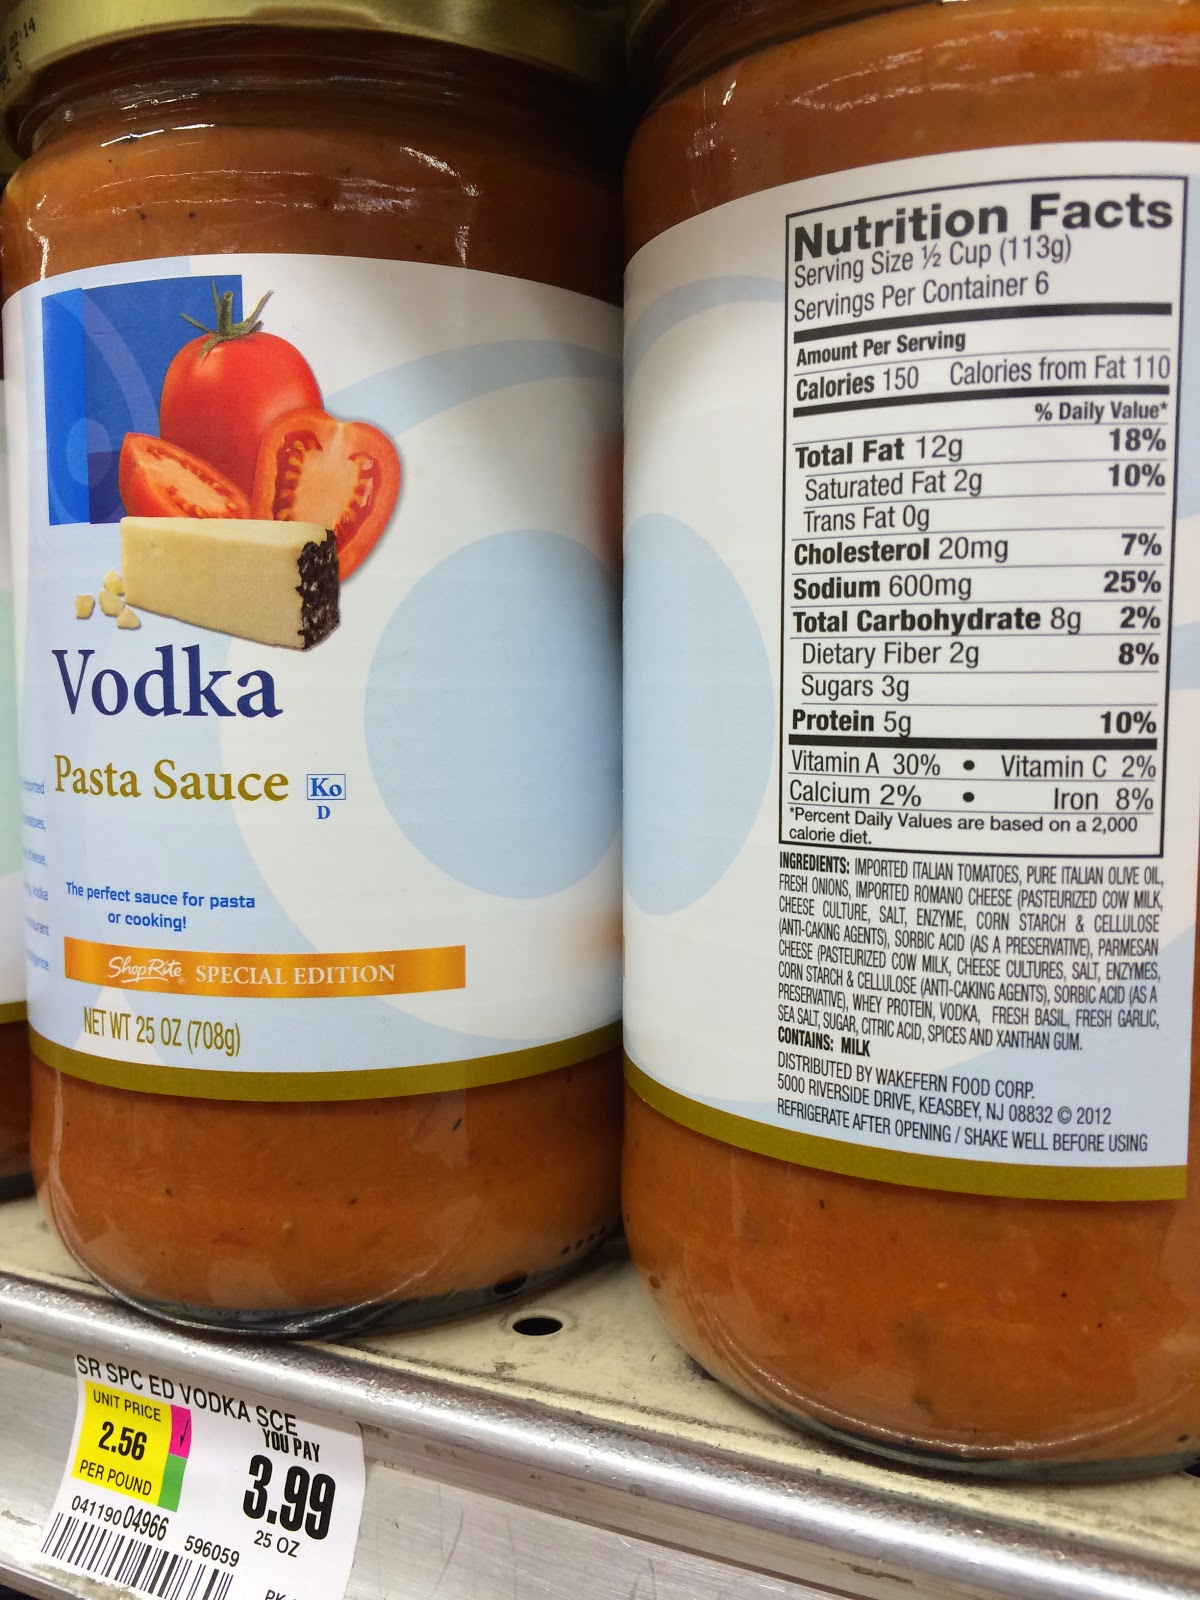 Shoprite can can sale 2015 - Late Last Month I Bought A 40 Ounce Jar Of Victoria Vodka Sauce Which Contains No Heavy Cream On Sale For 3 99 At The Shoprite In Paramus Below